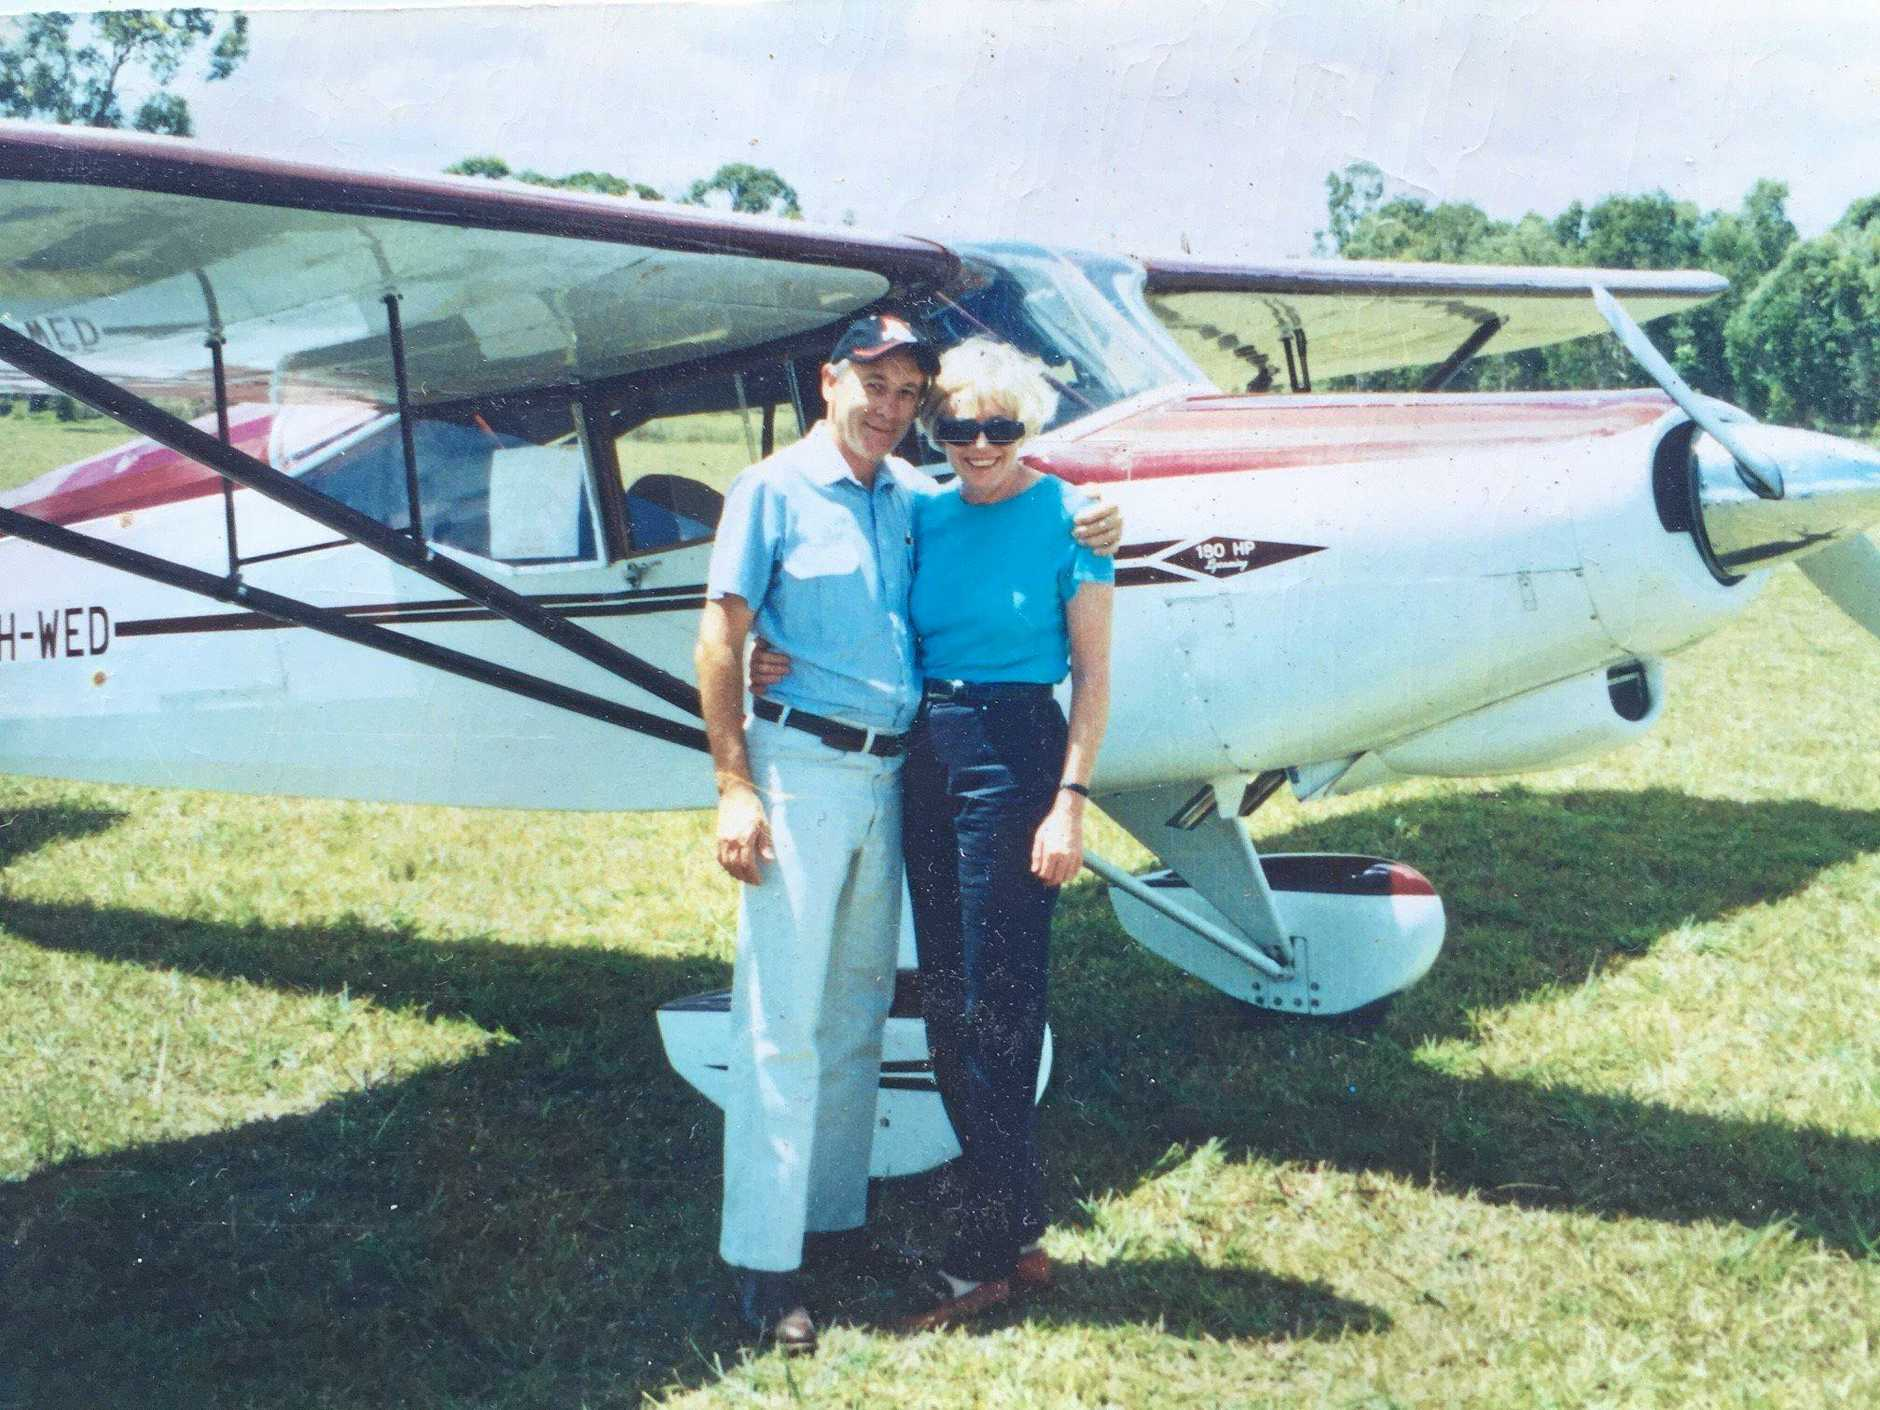 A LONG LOVE: Gary and Anne about to go for a joy flight from Archerfiield Airfield in a DeHavillan Auster aircraft.